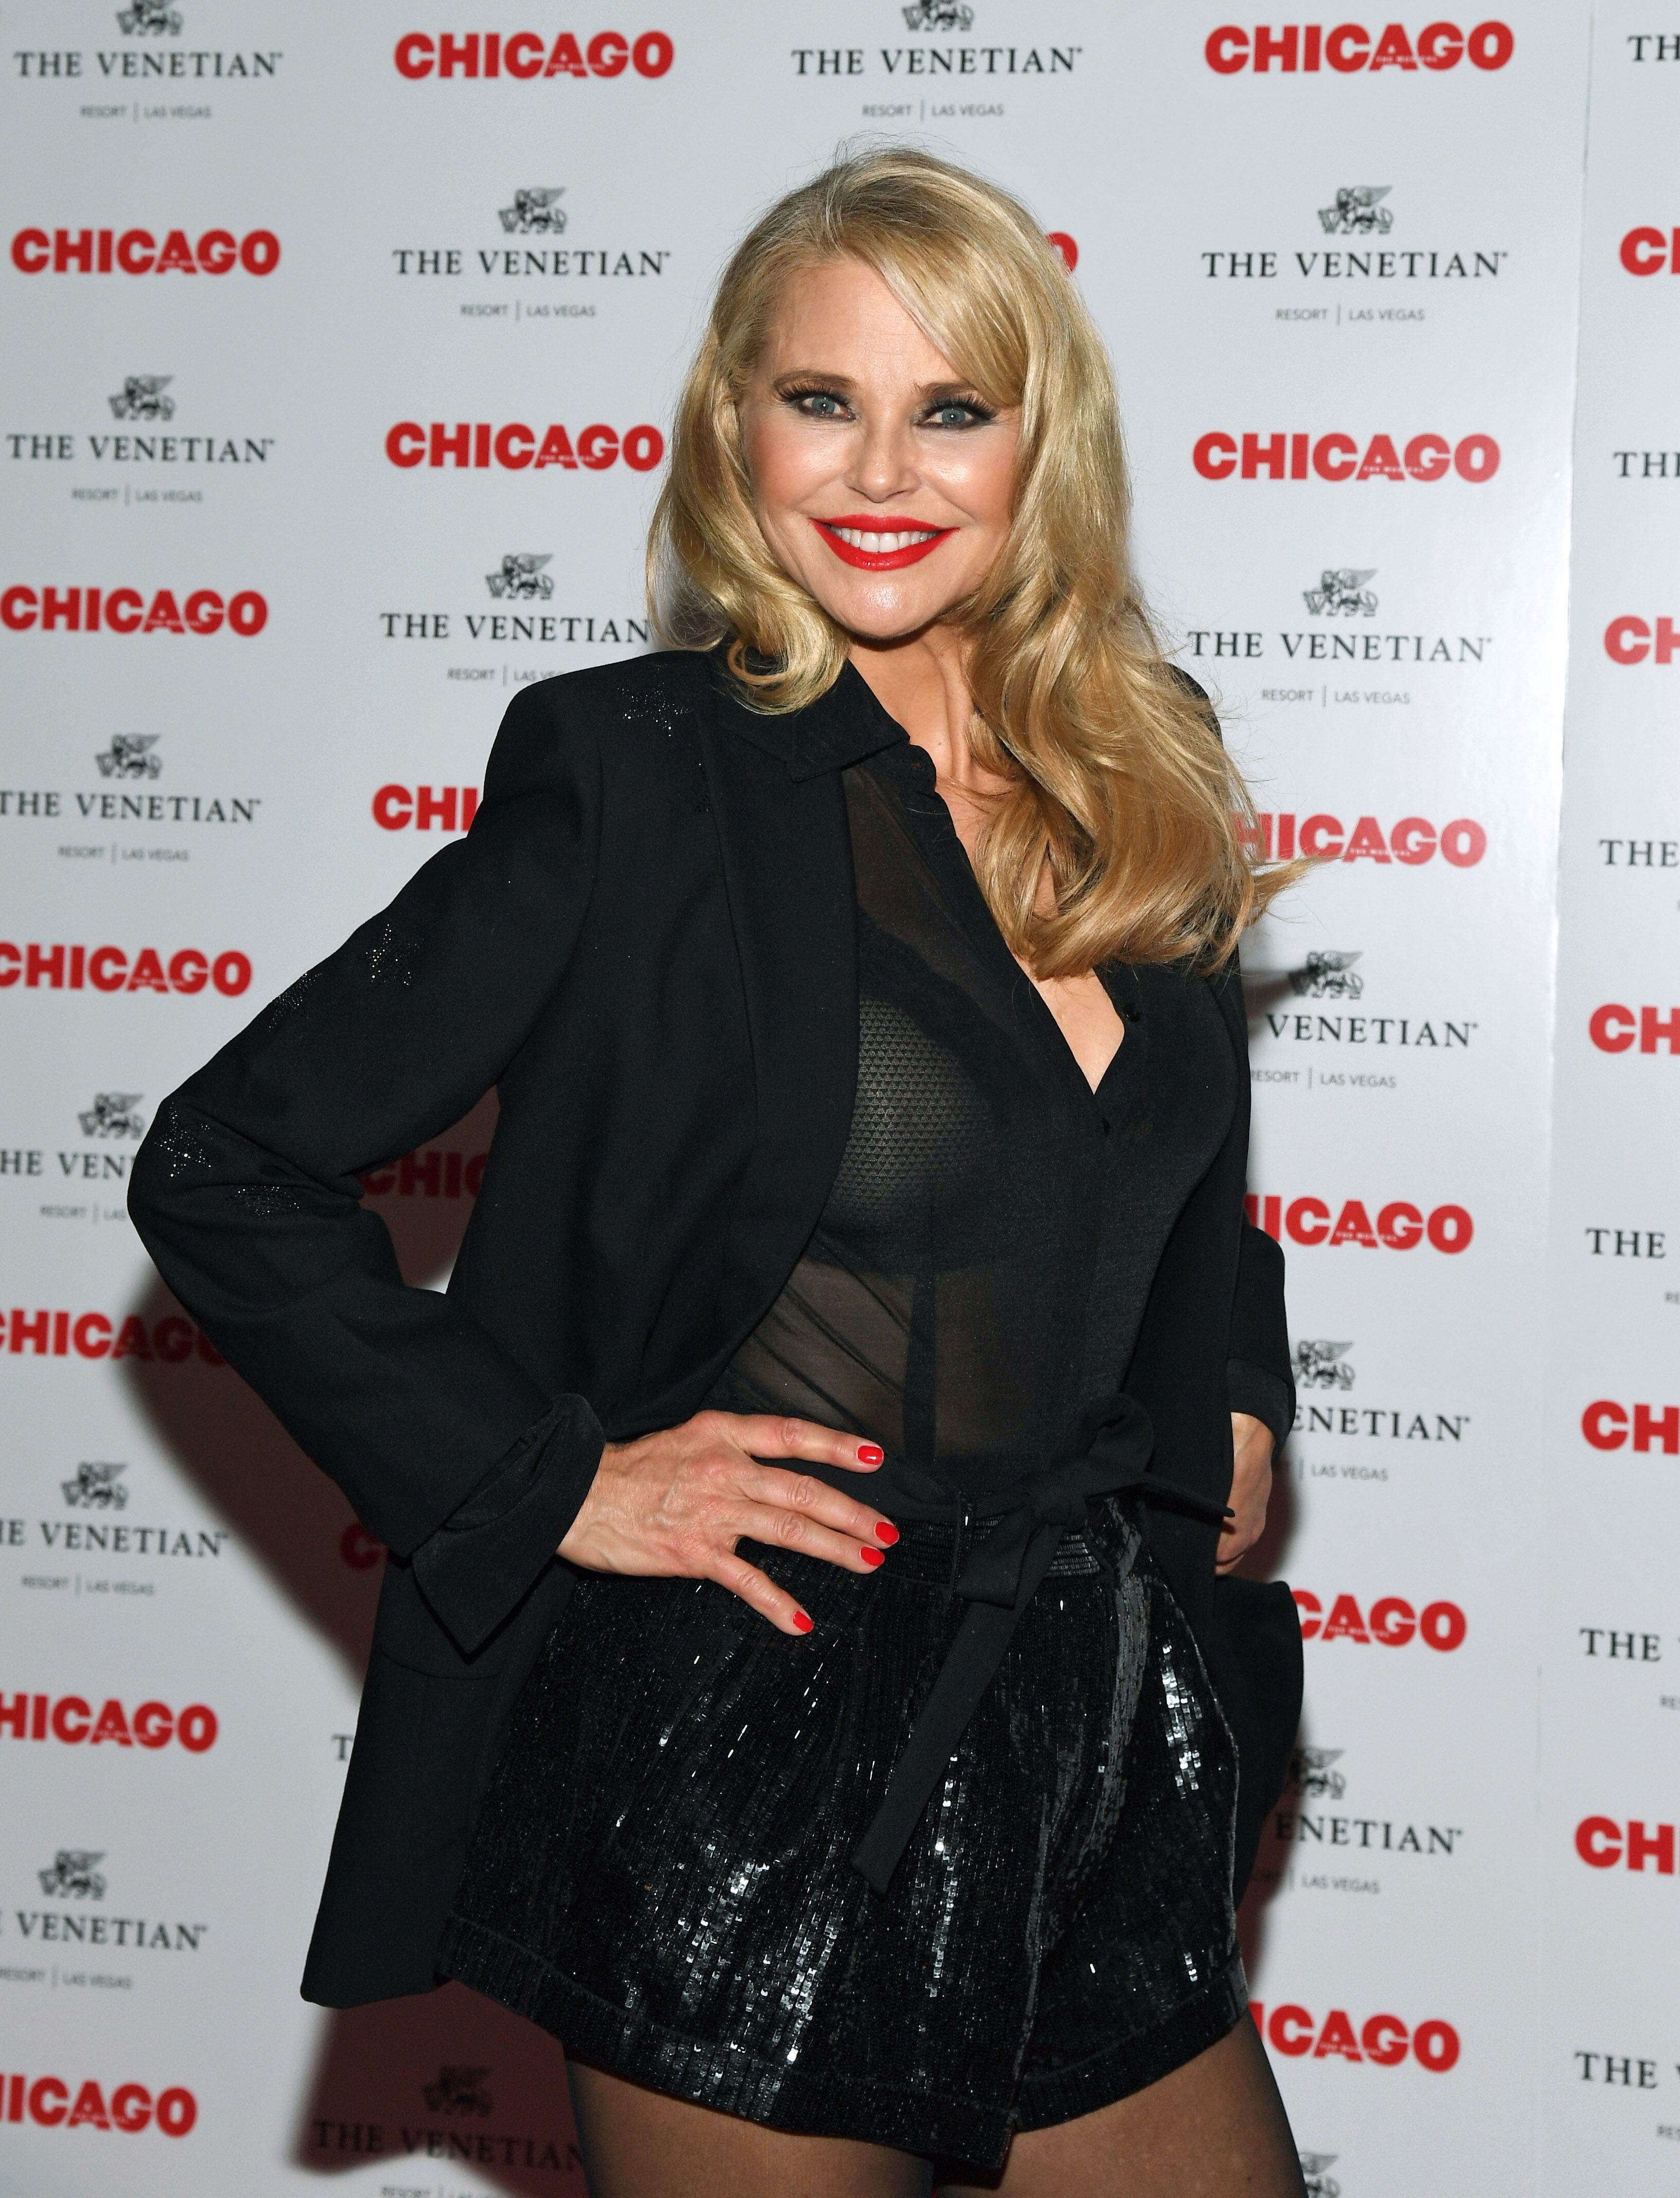 "Model/actress Christie Brinkley attends a reception at Chica restaurant after the opening night of a limited engagement of the musical ""Chicago"" at The Venetian Las Vegas on April 10, 2019 